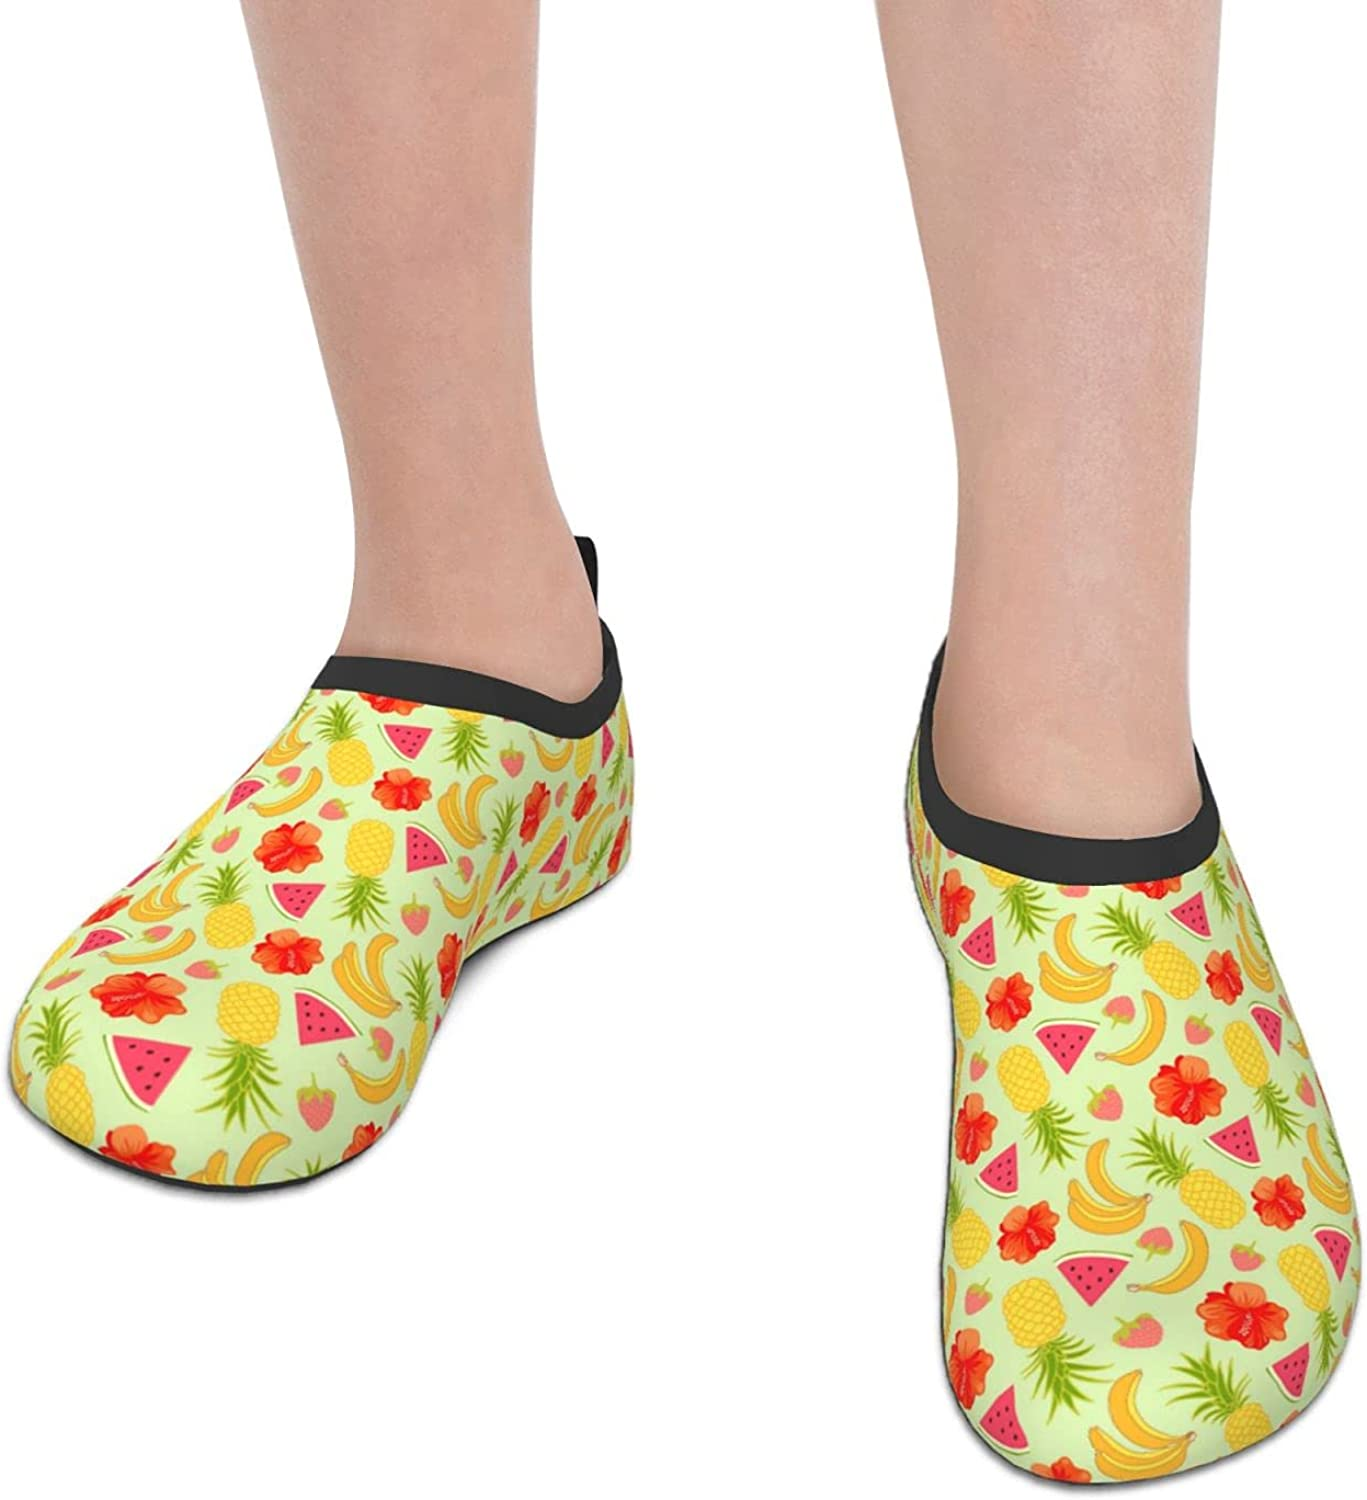 Red Fruit Watermelon Tropics Melon Children's Water Shoes Feel Barefoot for Swimming Beach Boating Surfing Yoga